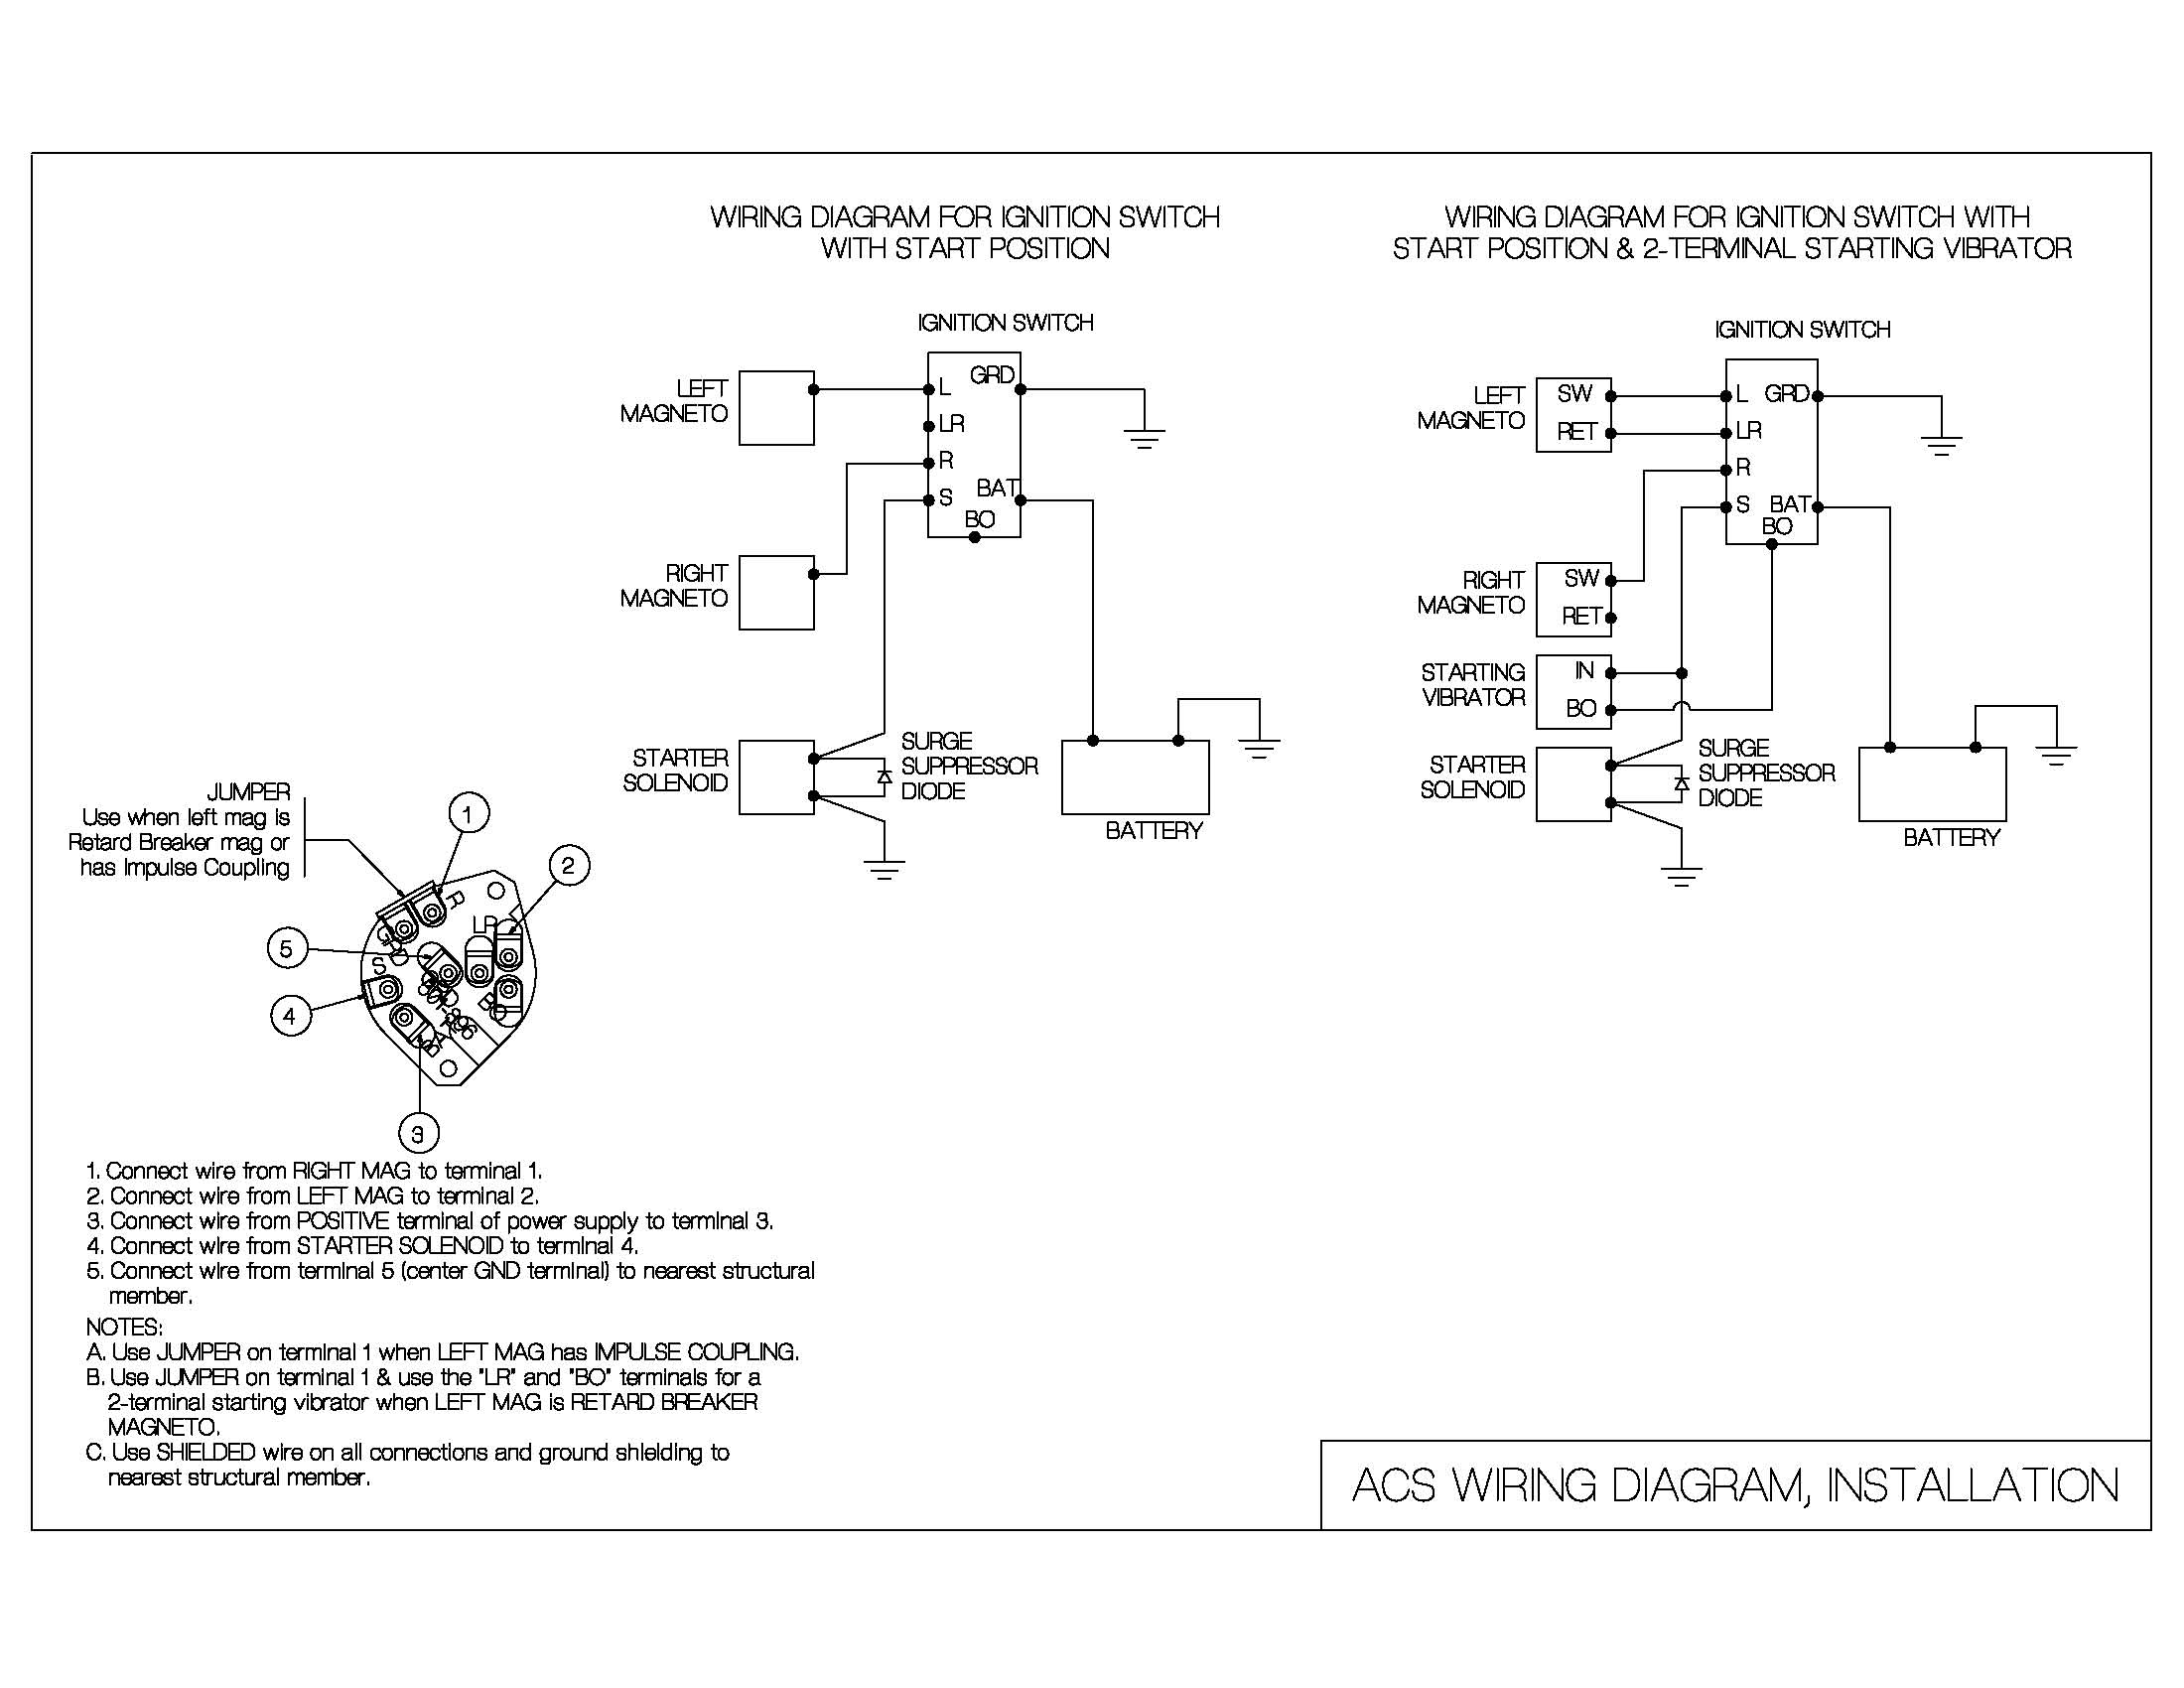 Wiring Diagram ignition switch wiring diagram acs products company terex hd1000 wiring diagram at gsmx.co